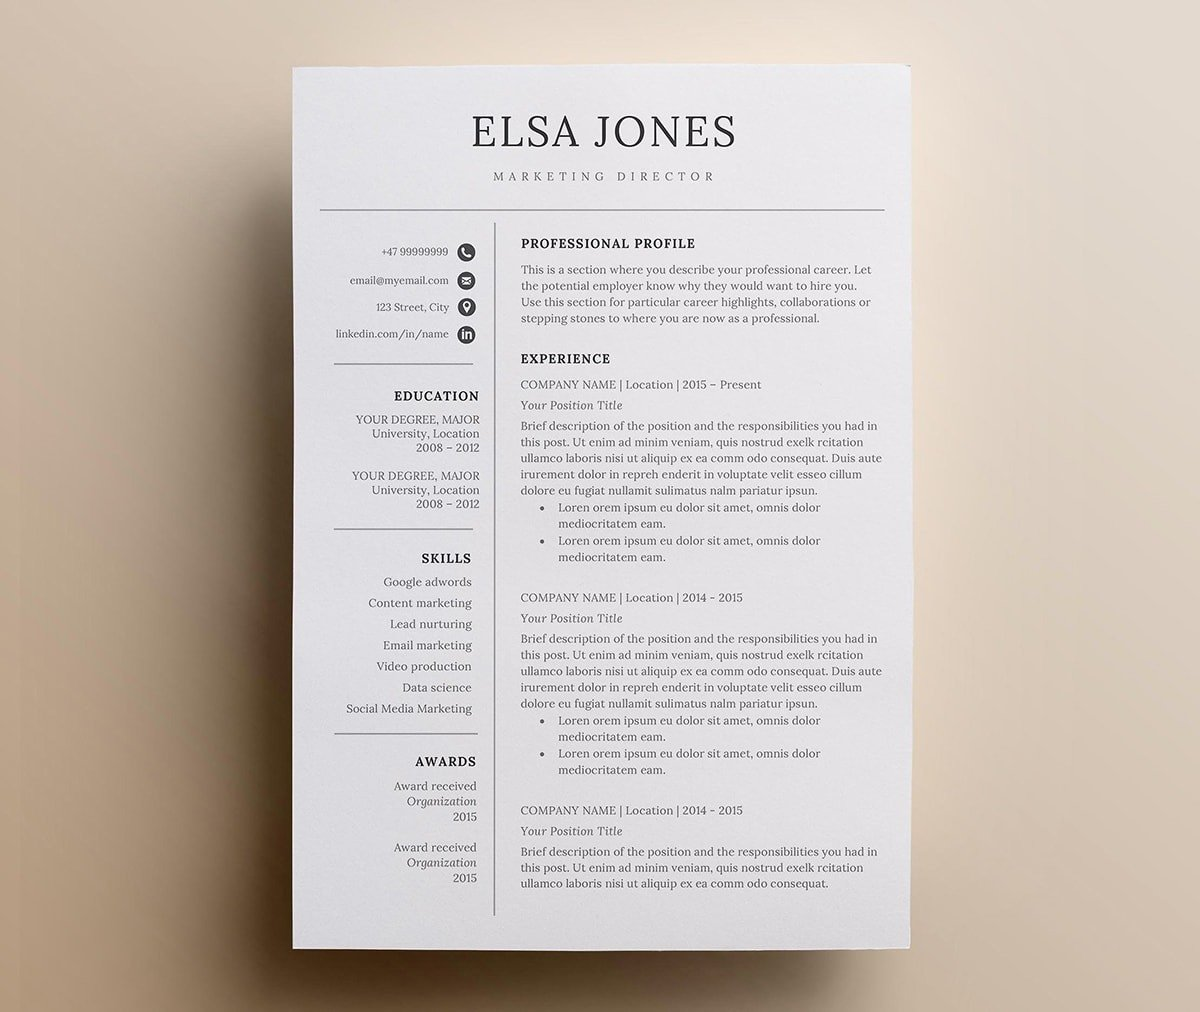 clean minimalist resume templates sleek design adobe spark examples ecommerce analyst Resume Adobe Spark Resume Examples